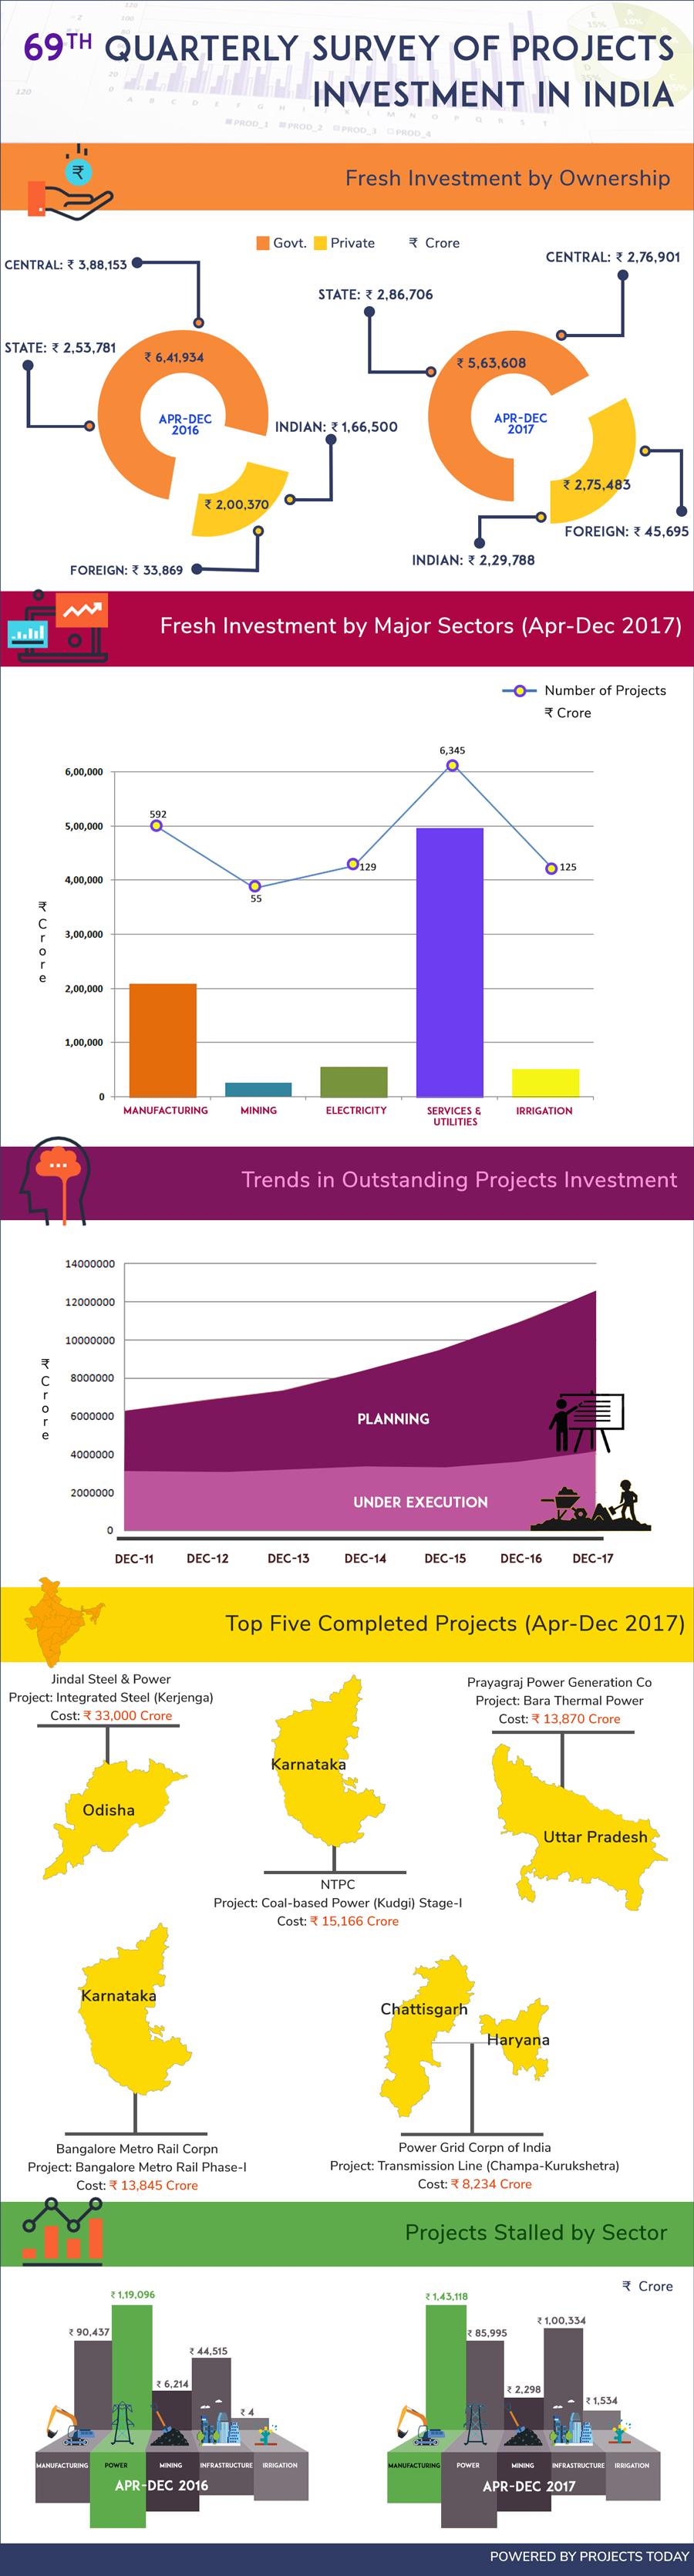 69th-survey-projects-investment.png